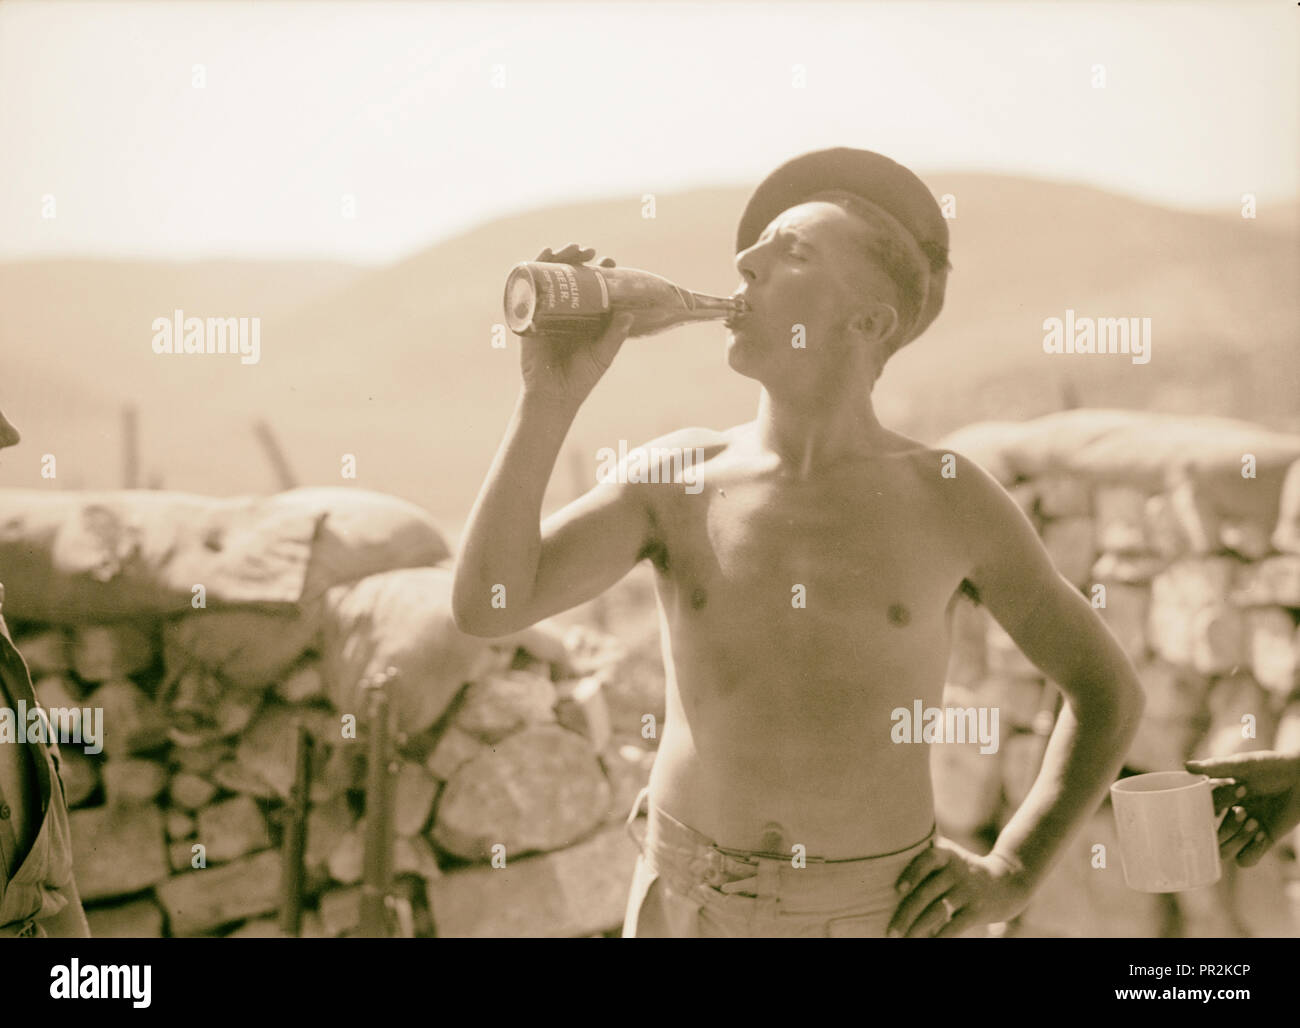 British Military Camp at klm. 41, Lubban-Nablus, Middle East Rd. British Tommies well earned bottle of beer in the Lubban Camp Stock Photo